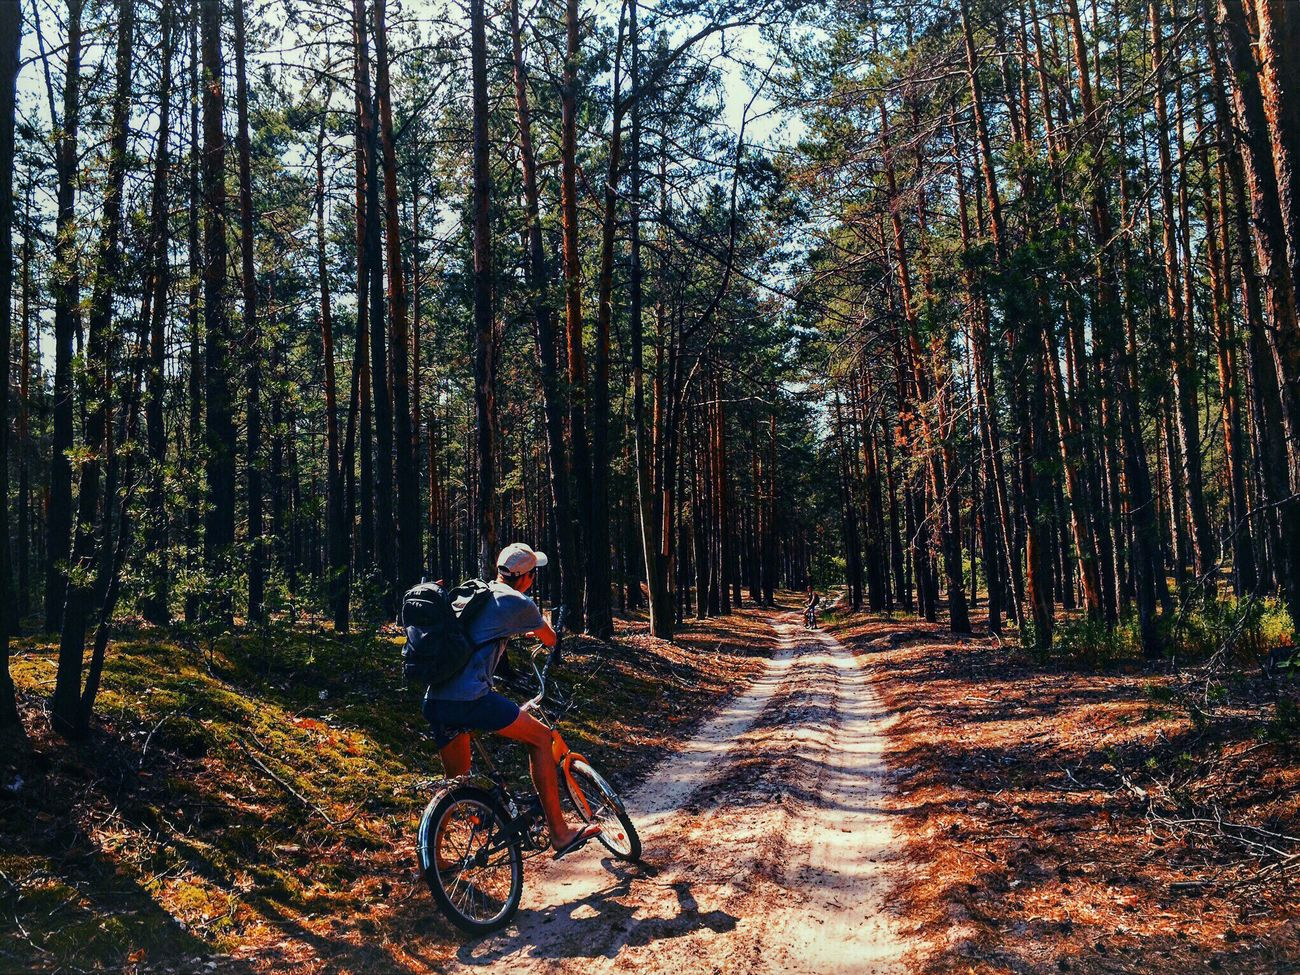 Travel Traveling Friends Bike Russian Beauty Future Enjoying Life EyeEm Best Shots Relaxing Russian Nature Photography Hello World Russia Beautiful Way Russian Culture NOVOZYBKOV Village Way To Go Home Village Life Village View Forest